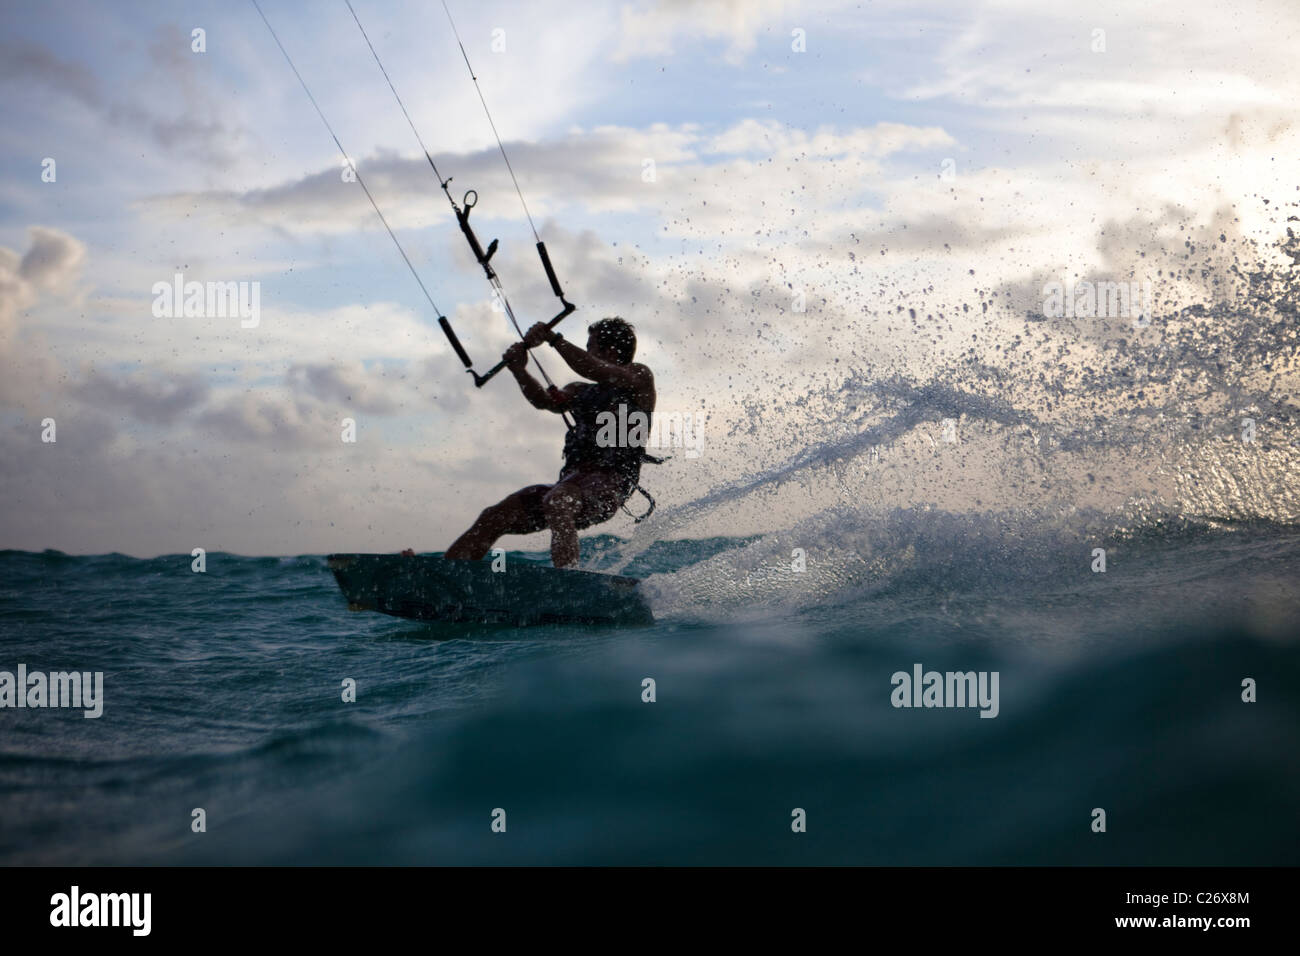 Kiteboarding Waimanalo @ Sunrise, male, David Giardini, carving some water - Stock Image